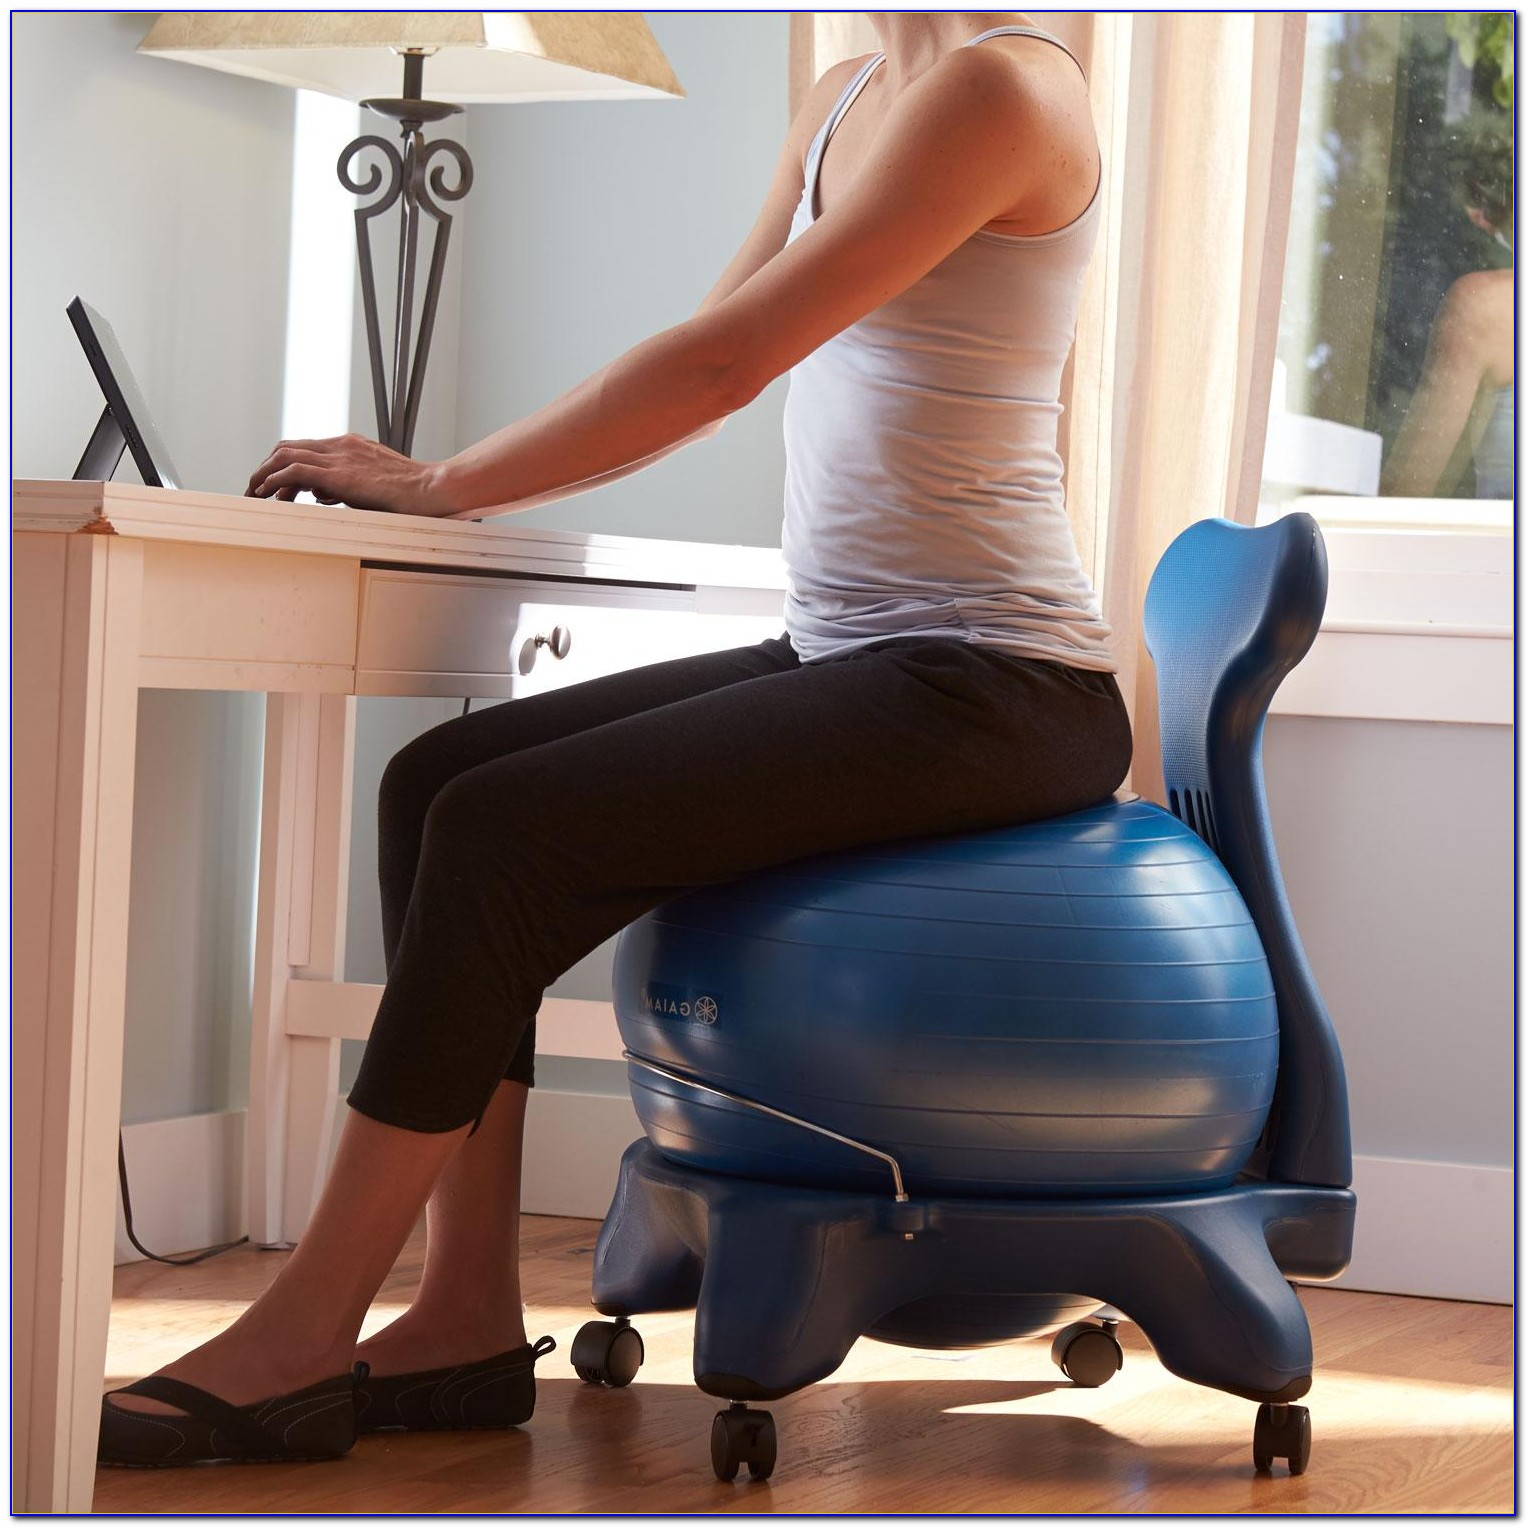 Gaiam Clic Balance Ball Office Chair Reviews